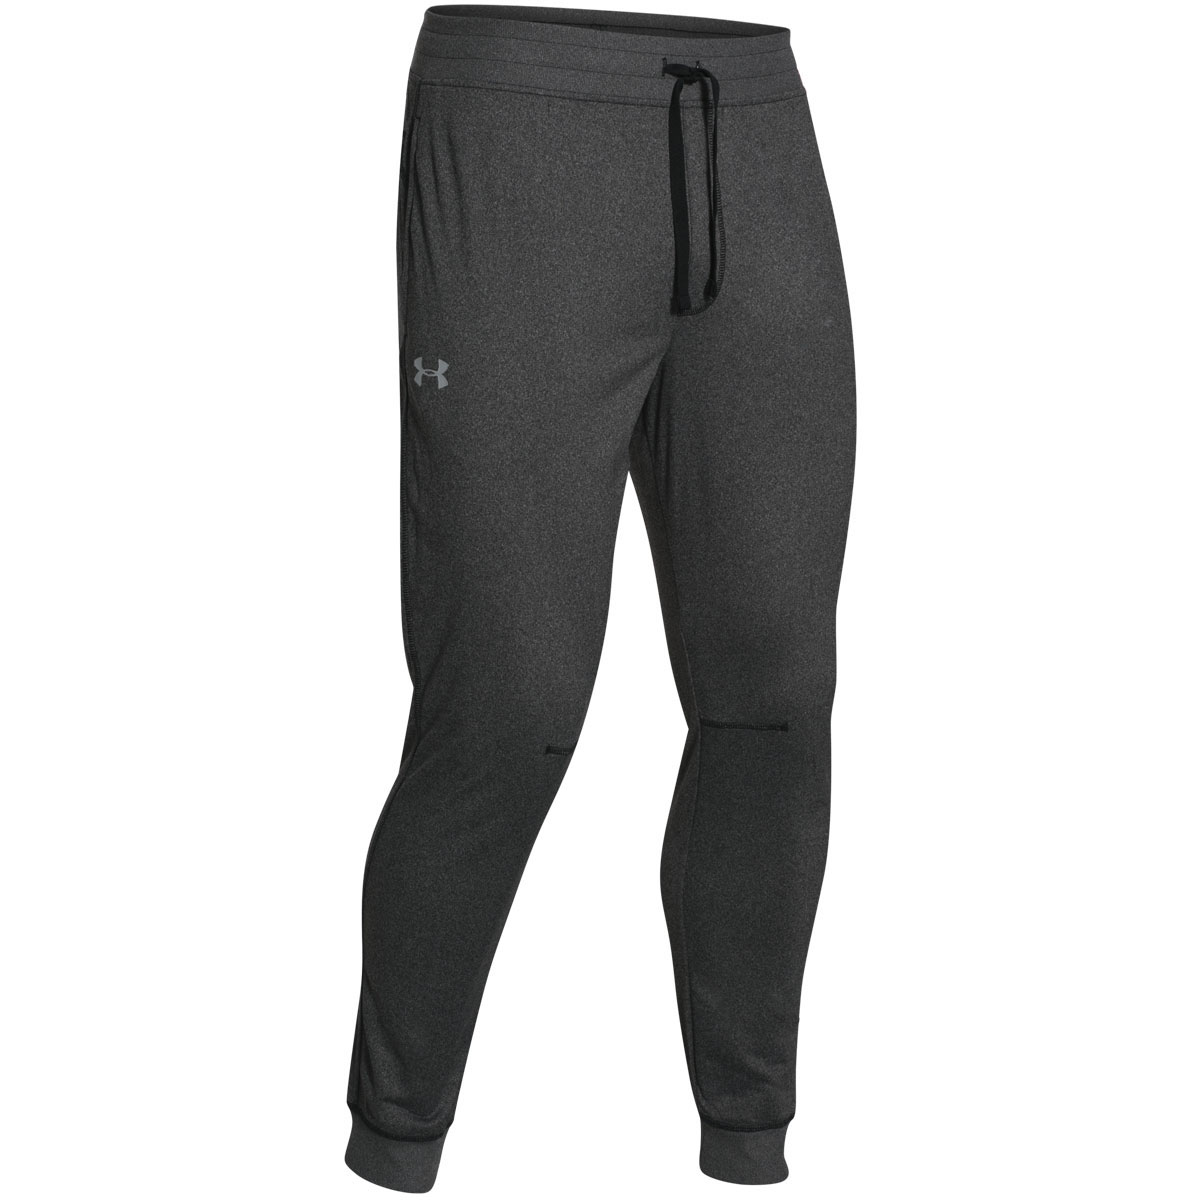 Under-Armour-2017-Mens-Sportstyle-Jogger-Tapered-Skinny-Slim-Fit-Jogging-Bottoms